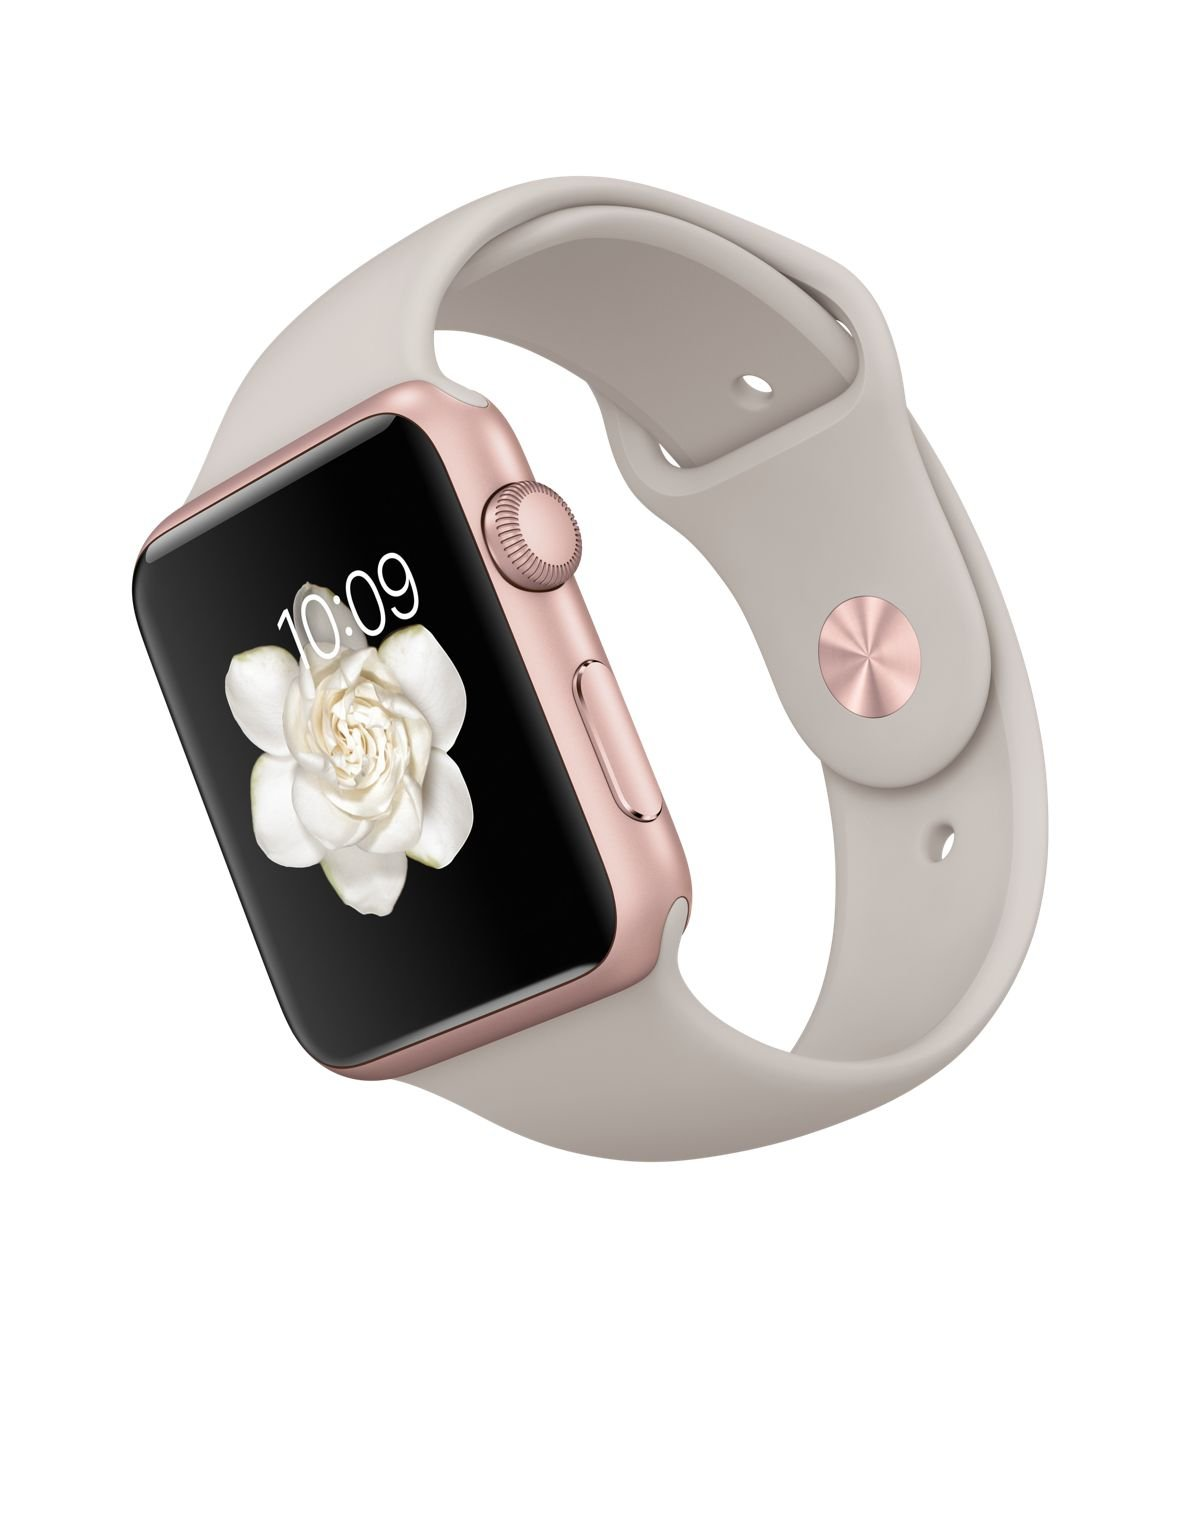 Buy Apple Watch 2 Now!